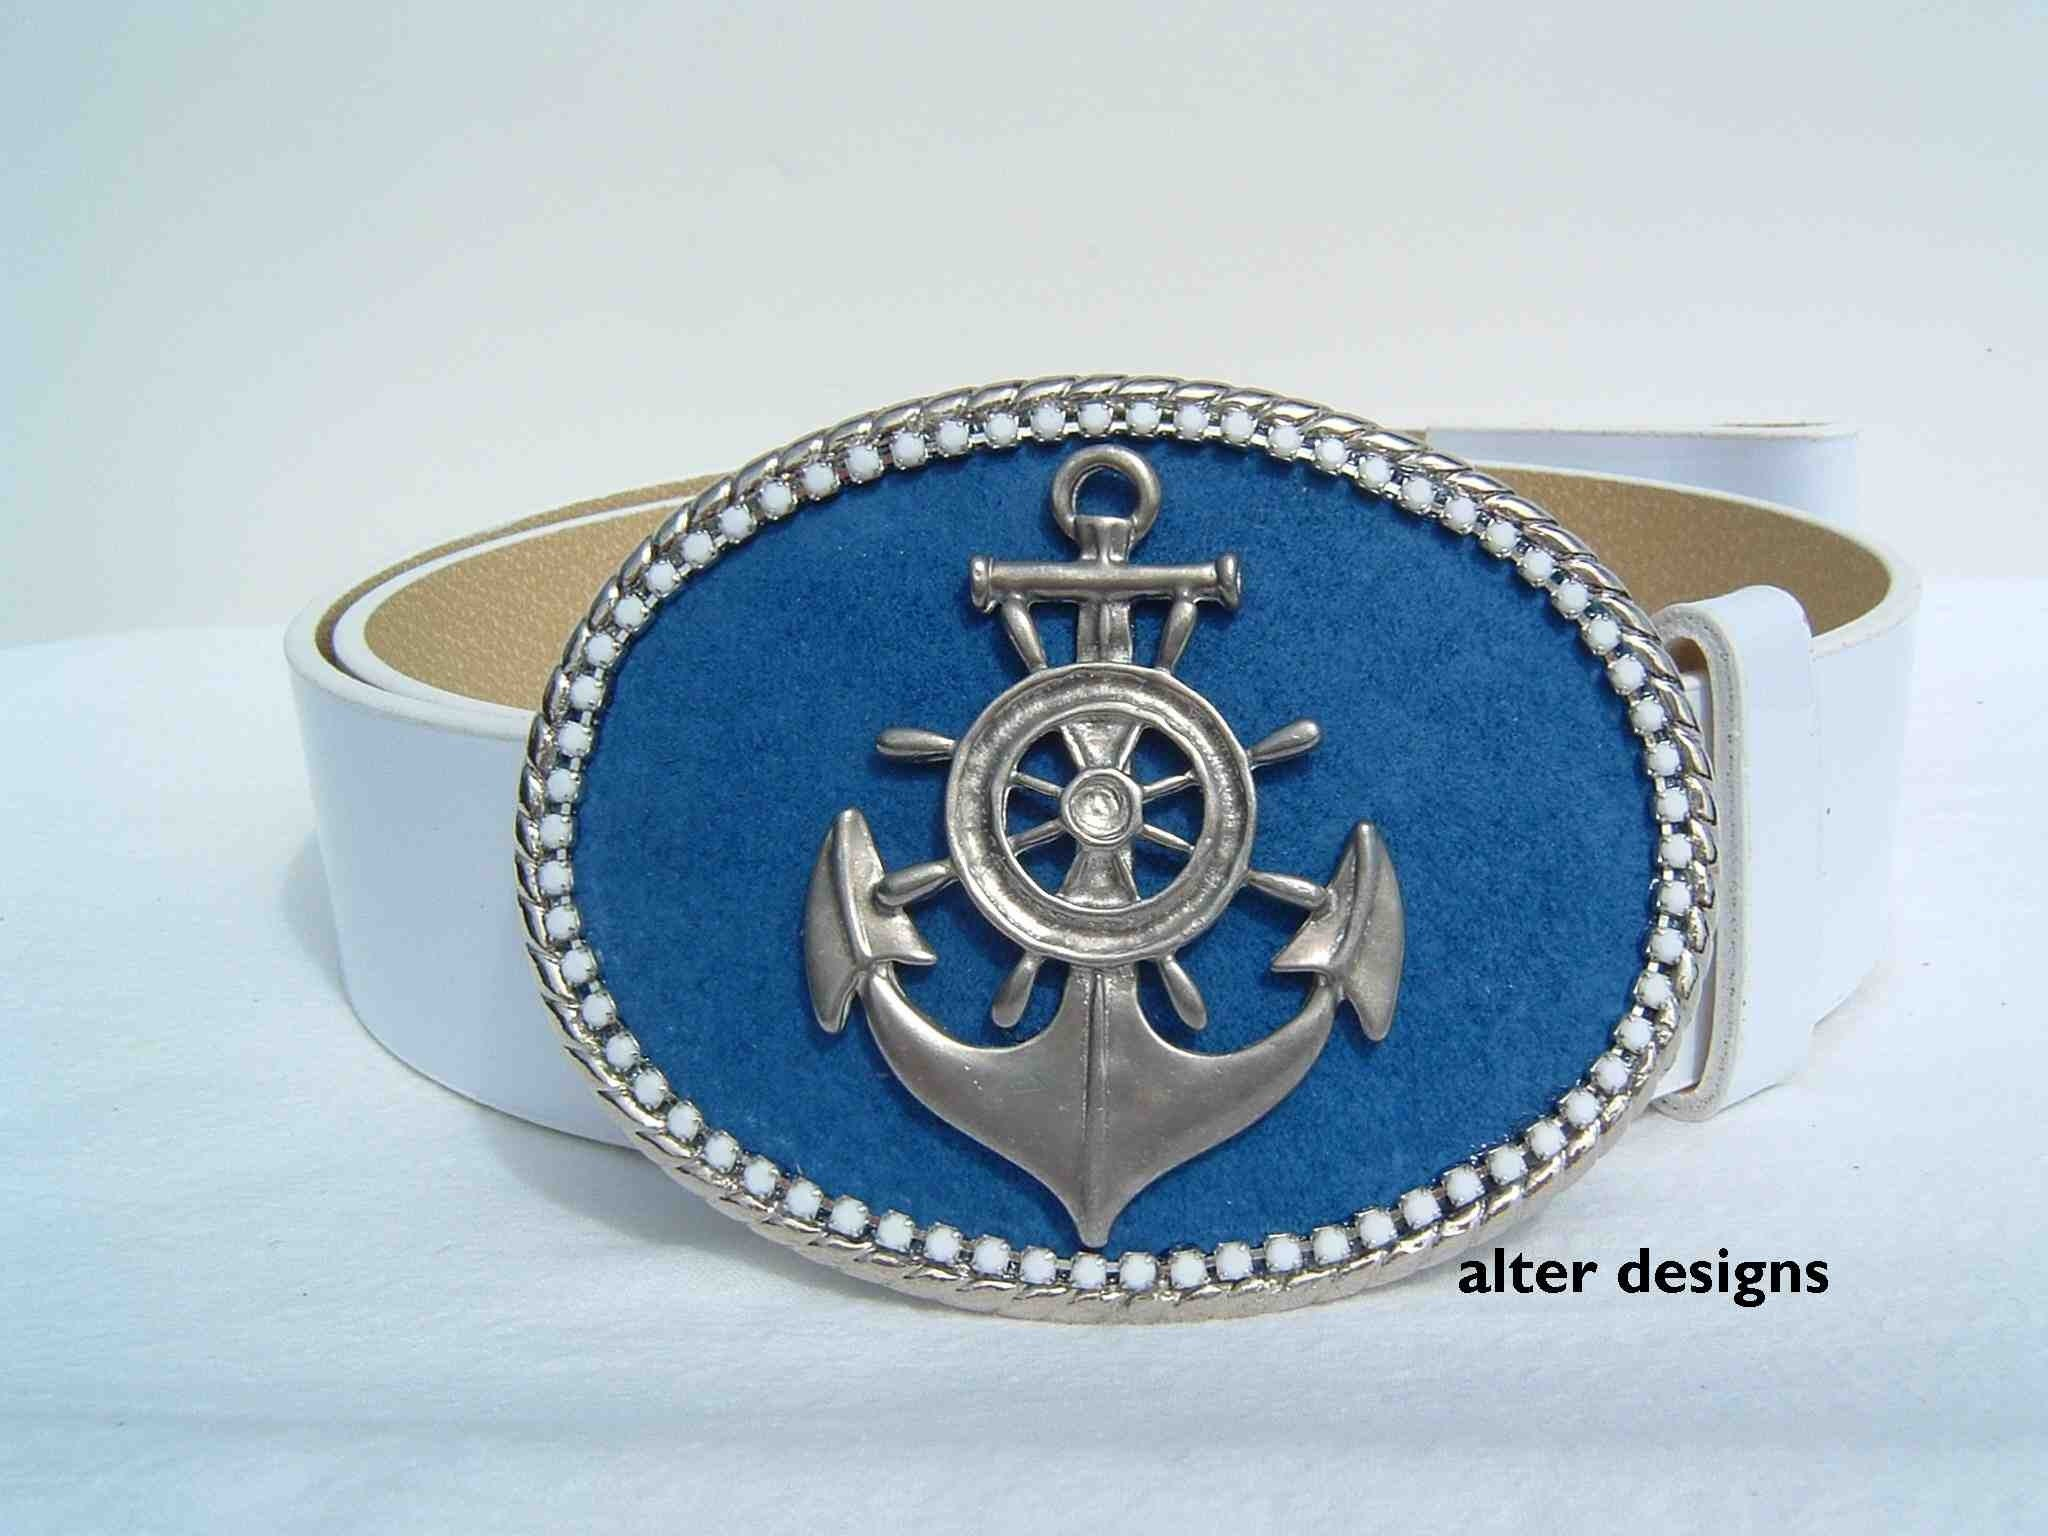 Nautical Anchor Belt Buckle - Navy Blue and White Preppy Resort Wear - Delta Gamma